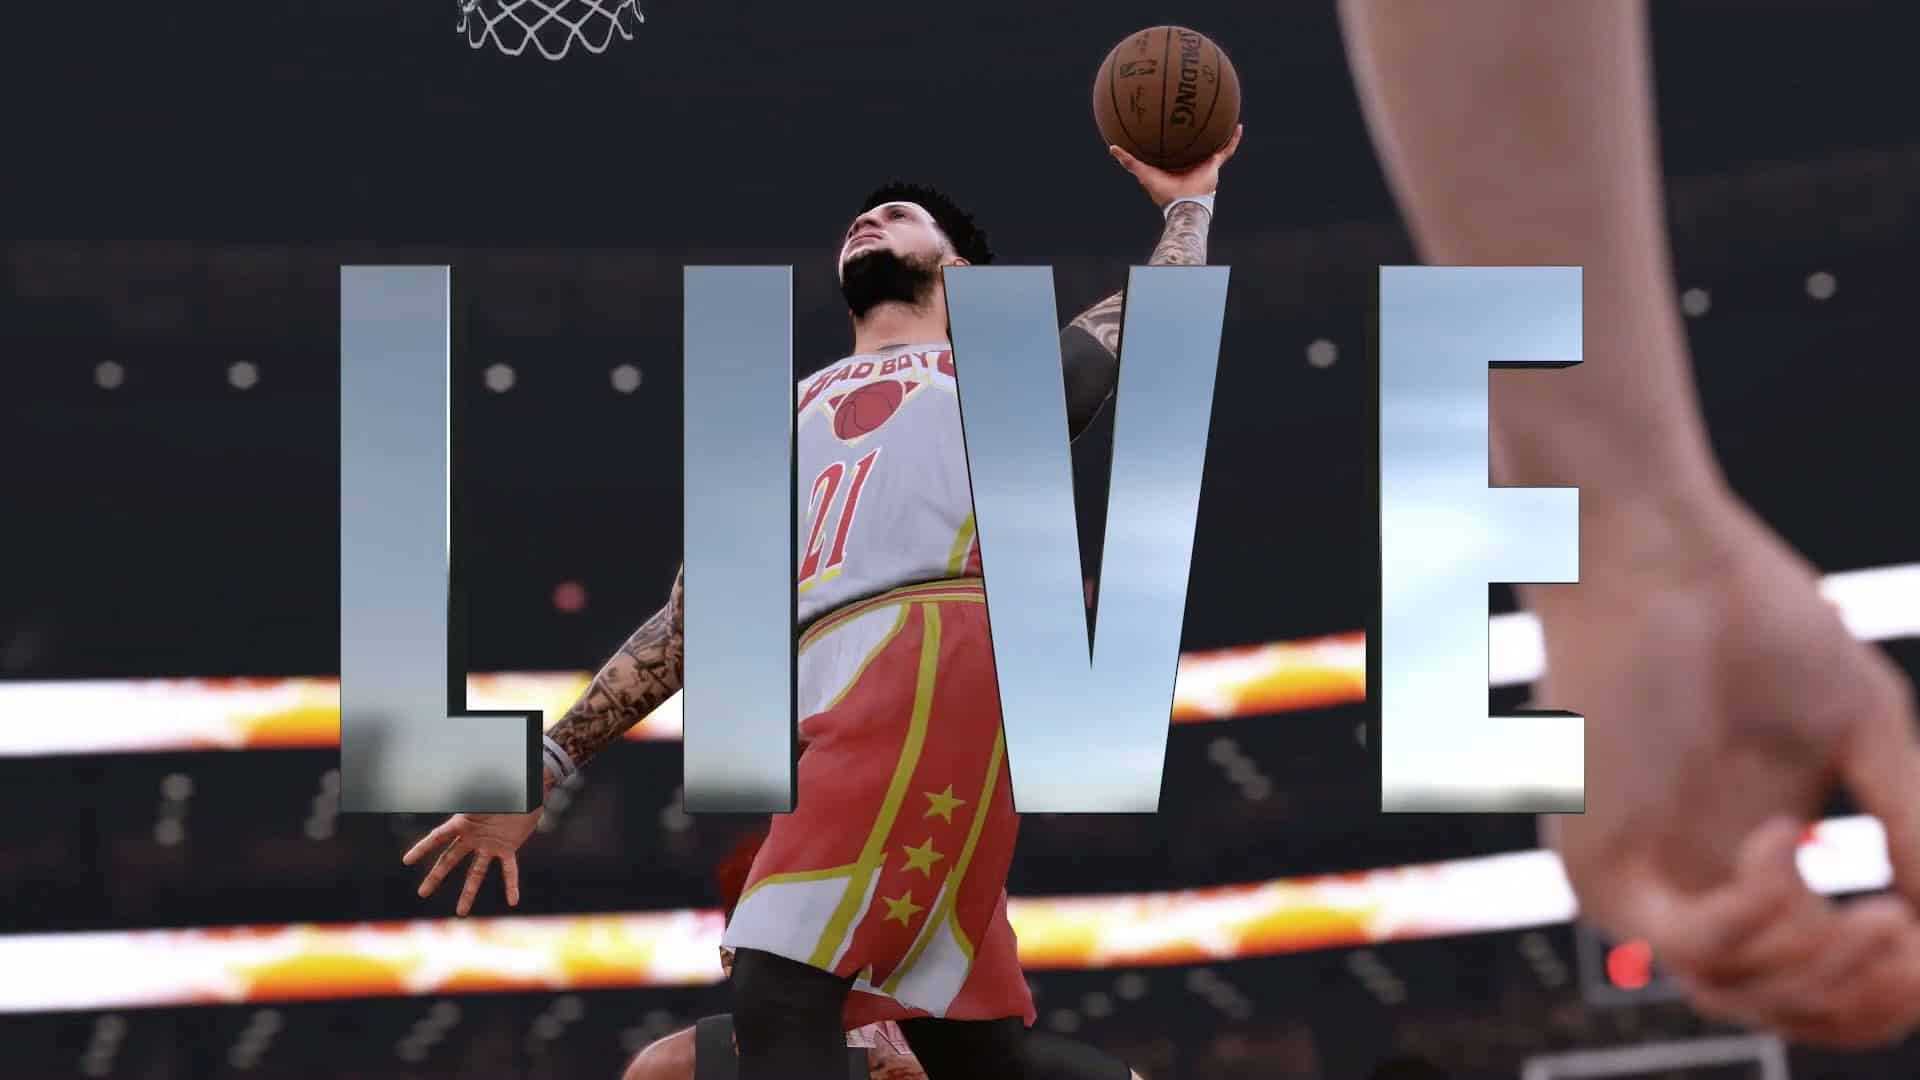 nba 2k16 road to the finals 2k streamcast